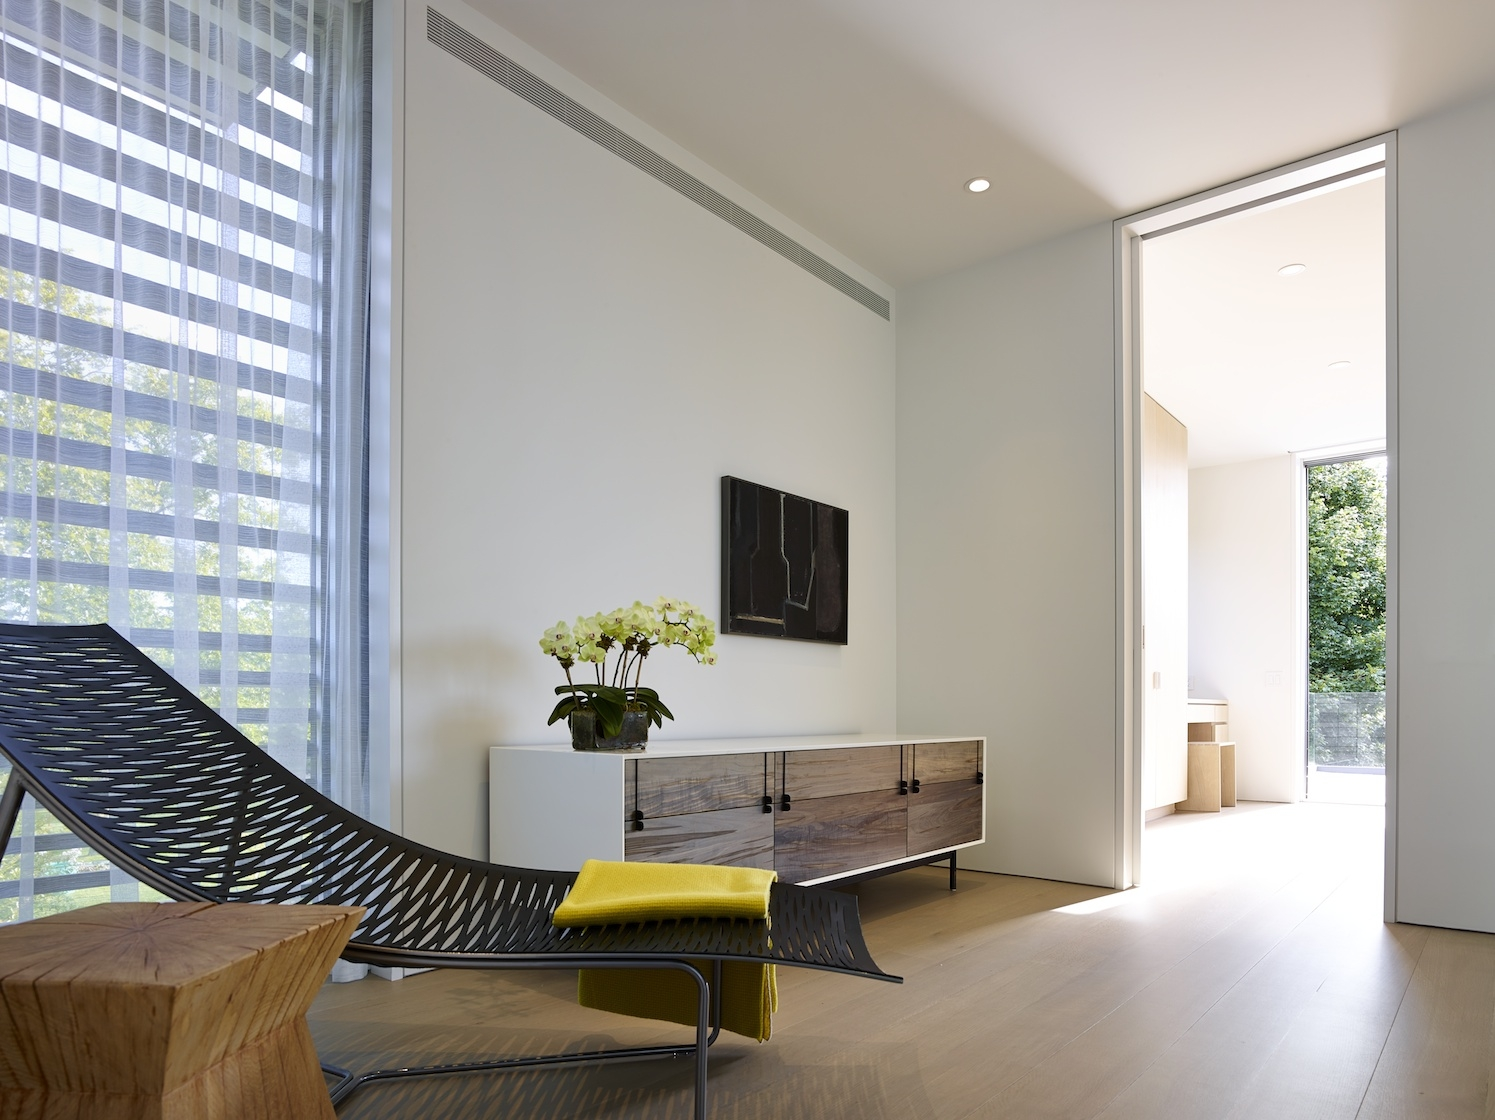 Orchard House Interiors Stelle Lomont Rouhani Architects Award